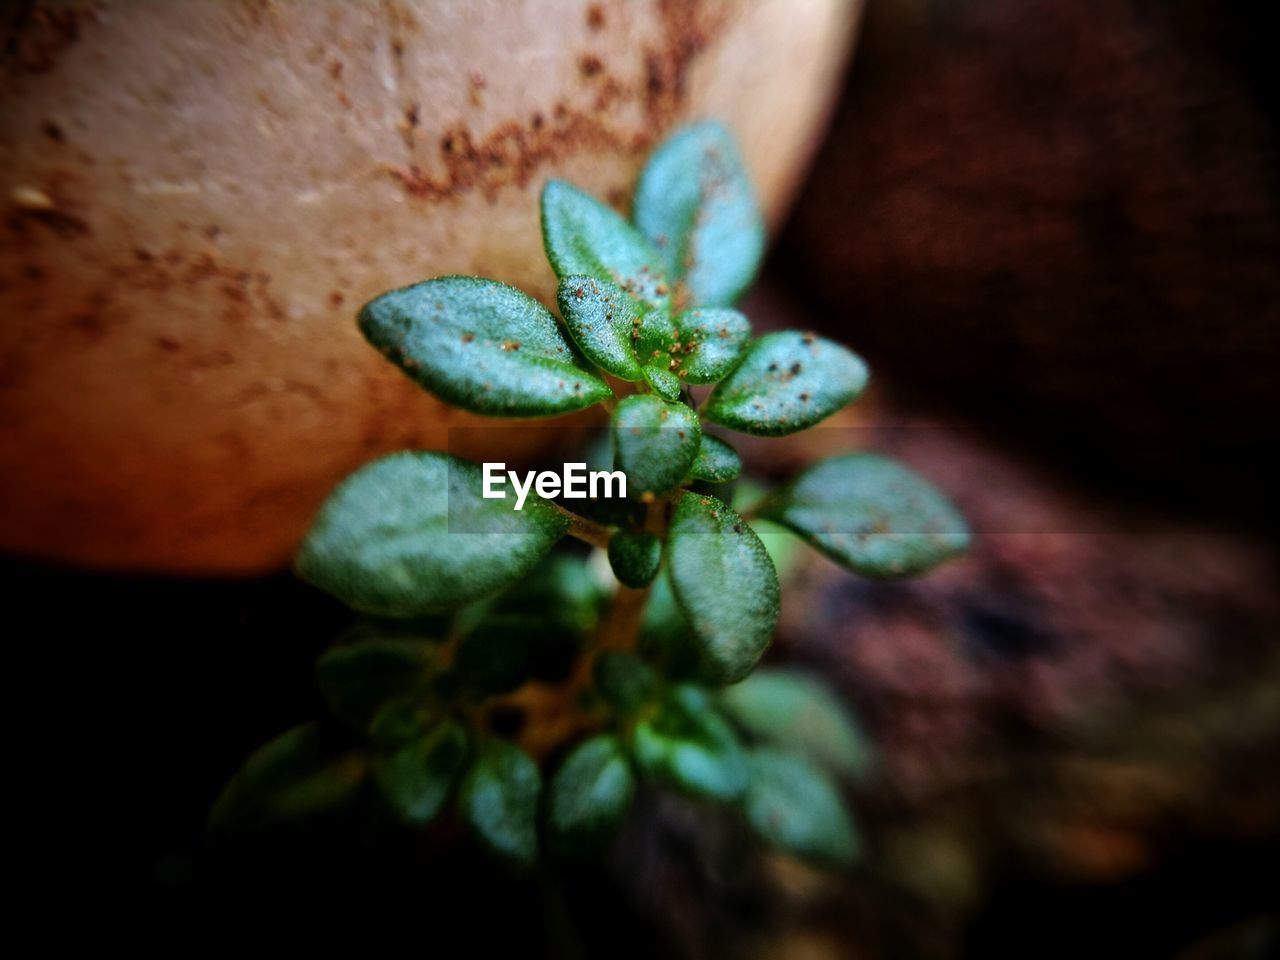 growth, plant, close-up, leaf, plant part, beauty in nature, nature, selective focus, no people, freshness, green color, day, outdoors, fragility, vulnerability, focus on foreground, food, fruit, food and drink, flower